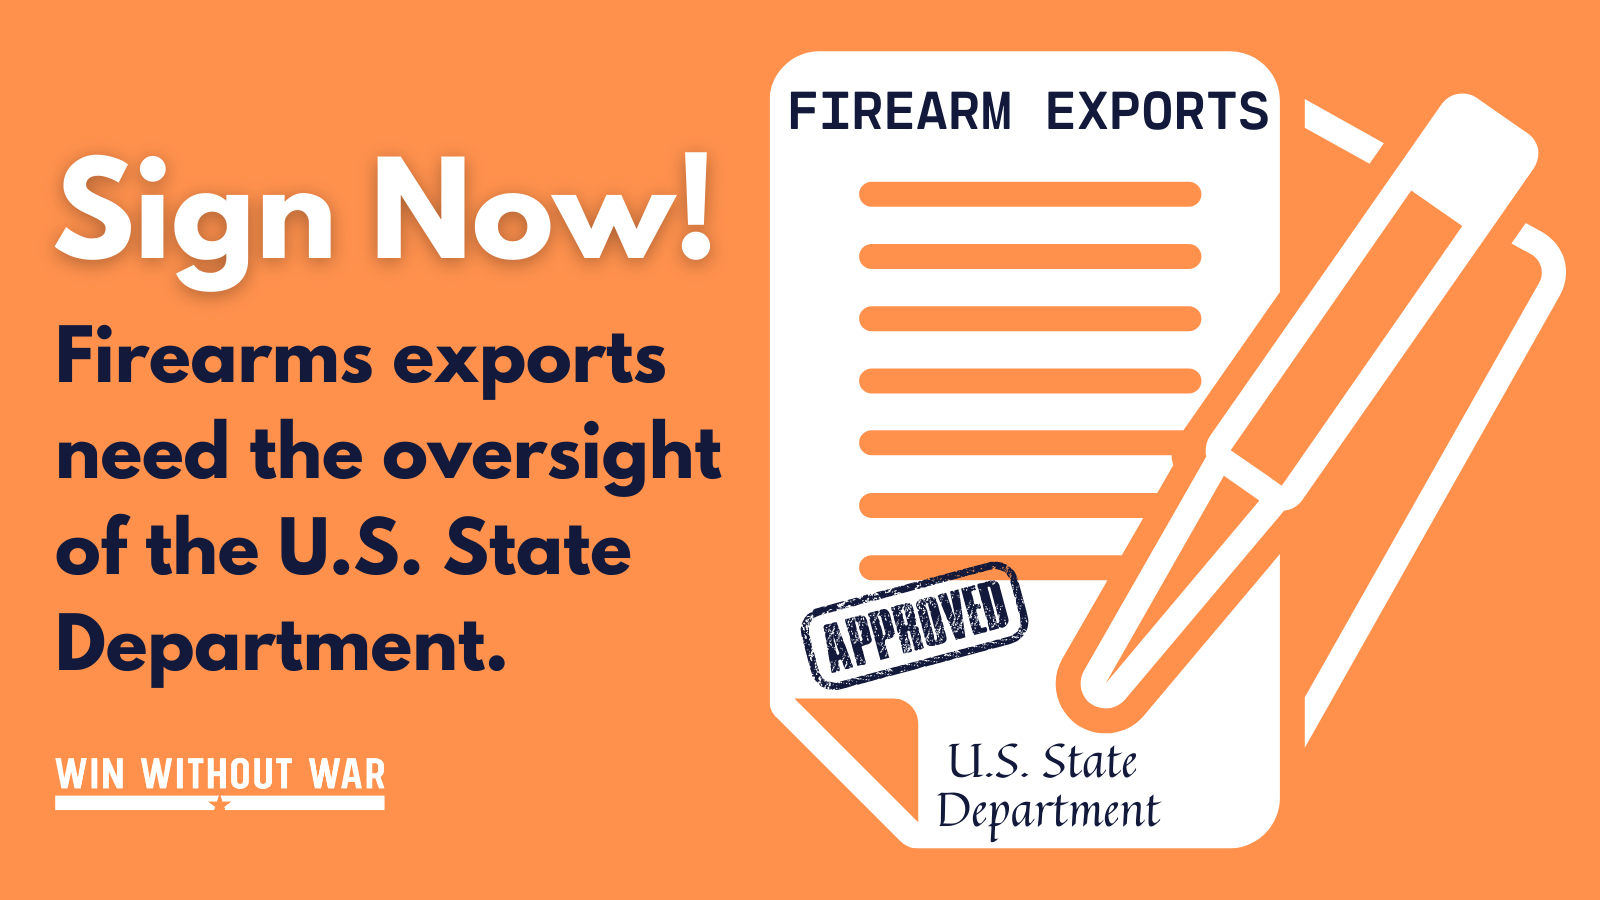 Tell President Biden: Restore State Department authority over firearms exports